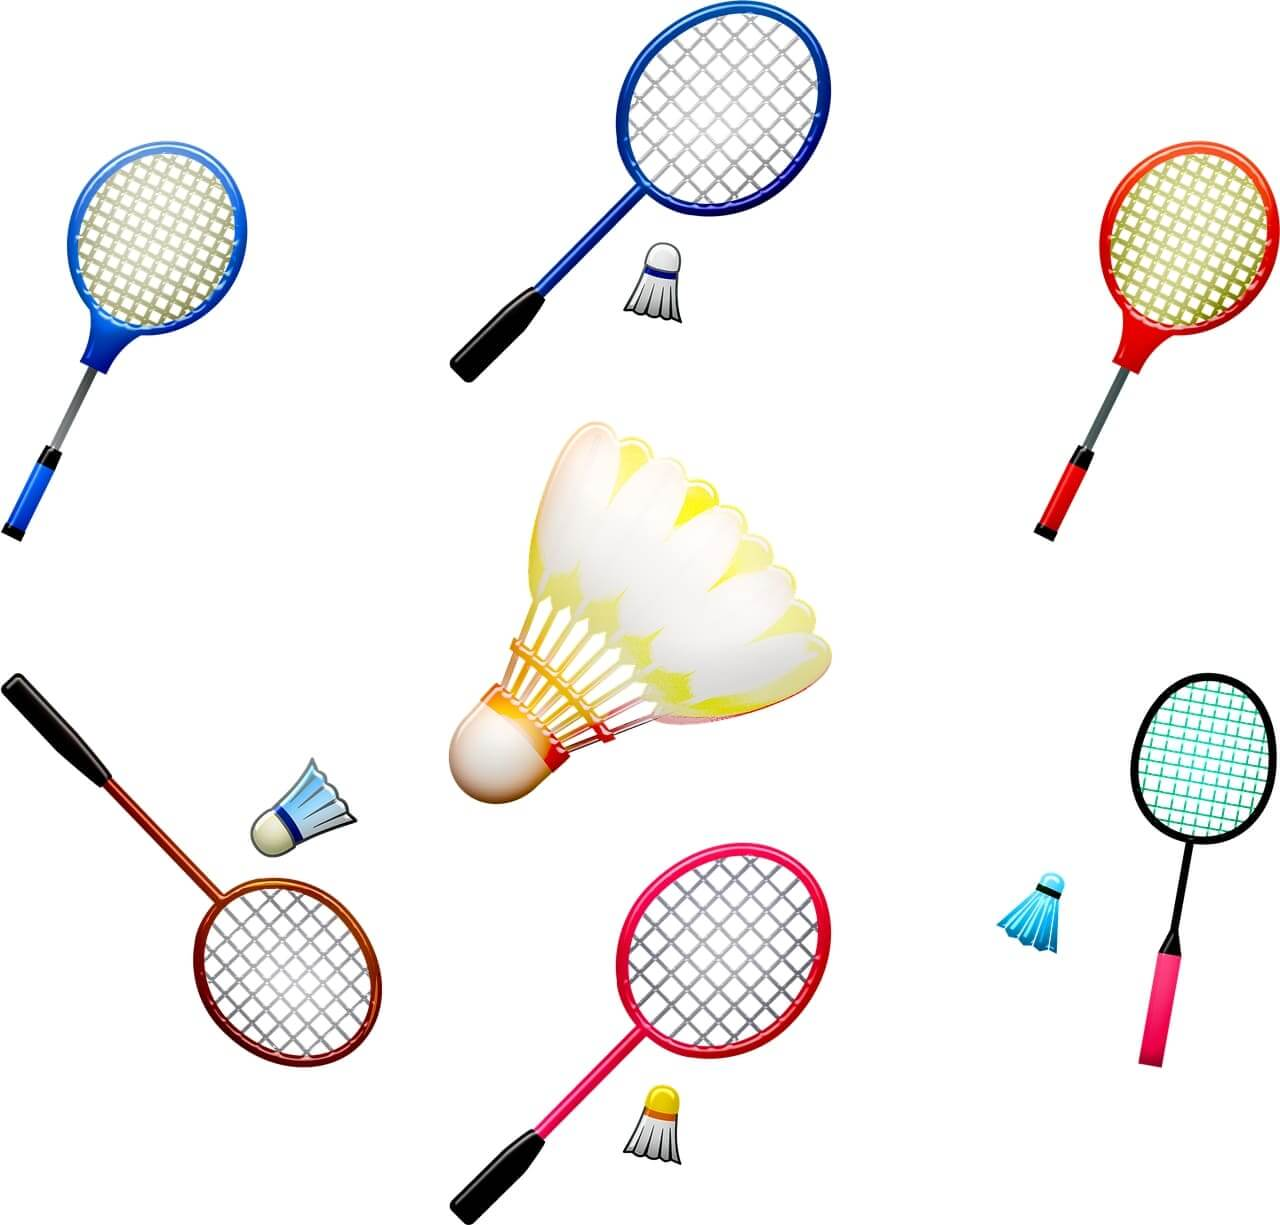 Read more about the article What Equipment Do You Need to Play Badminton?